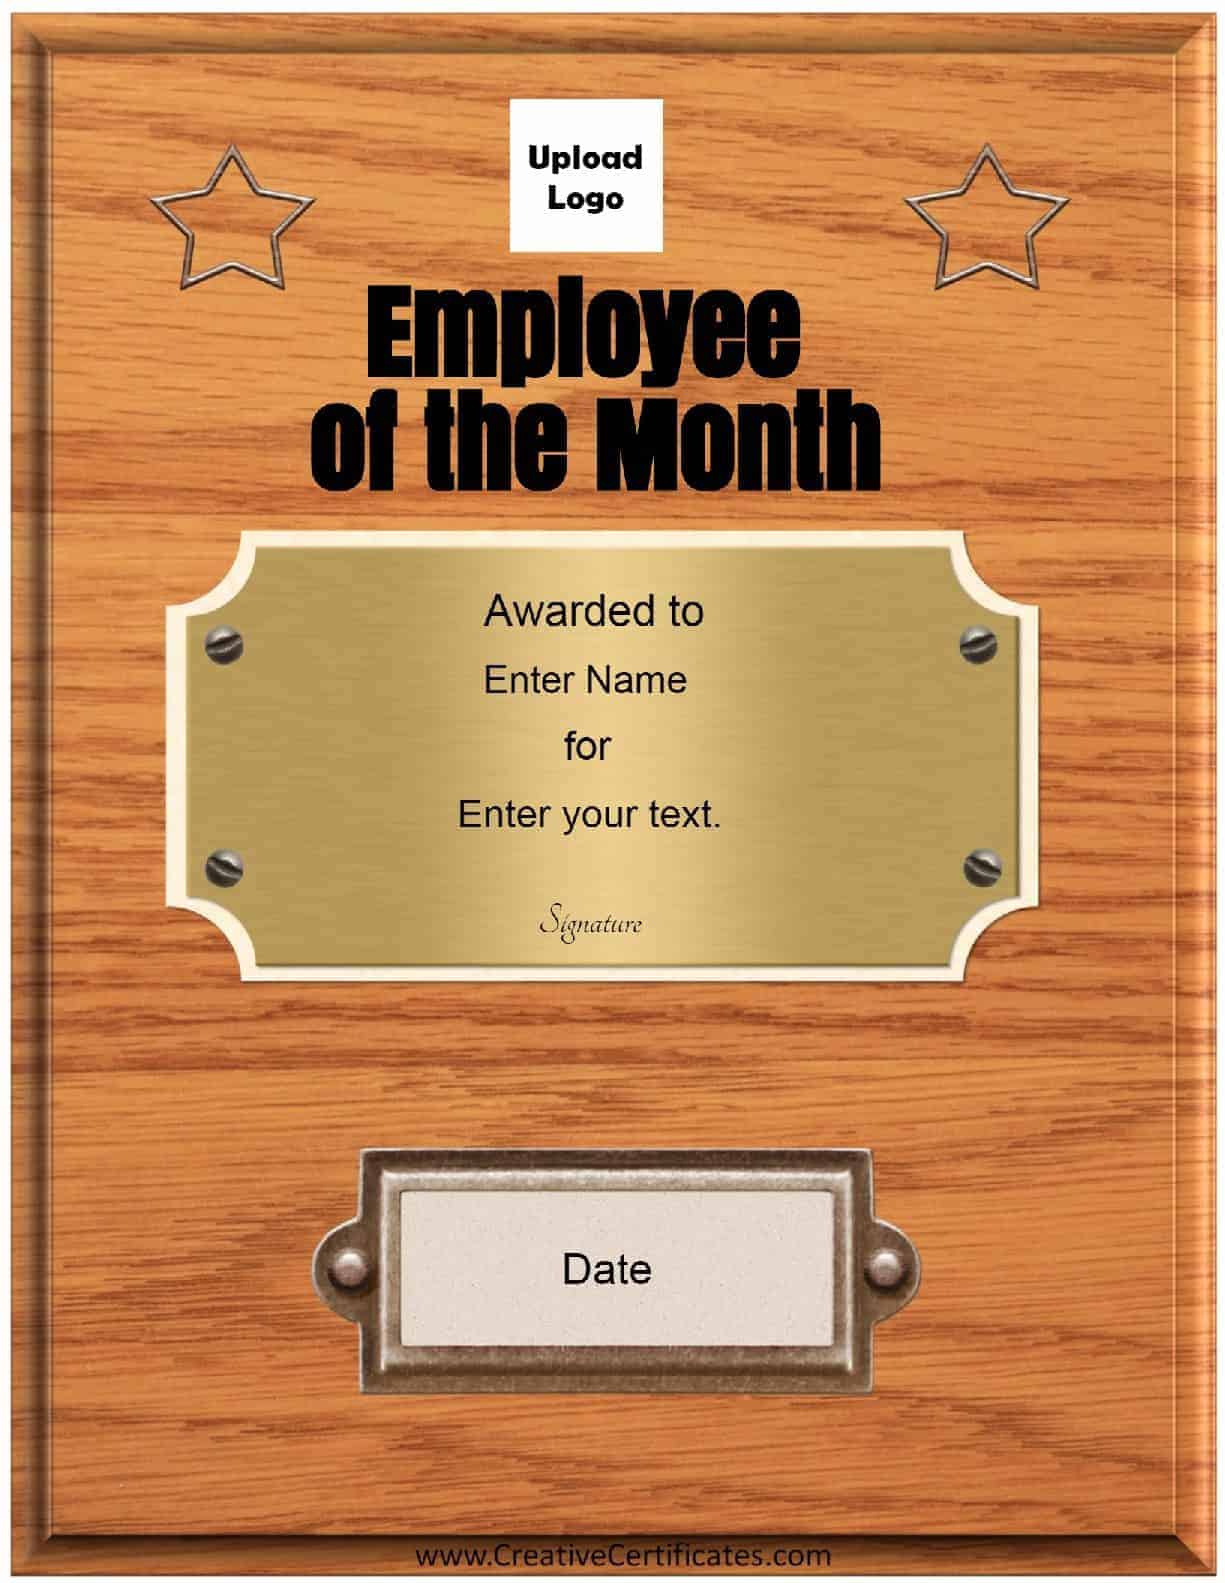 employee of the month certificate template free download - free custom employee of the month certificate